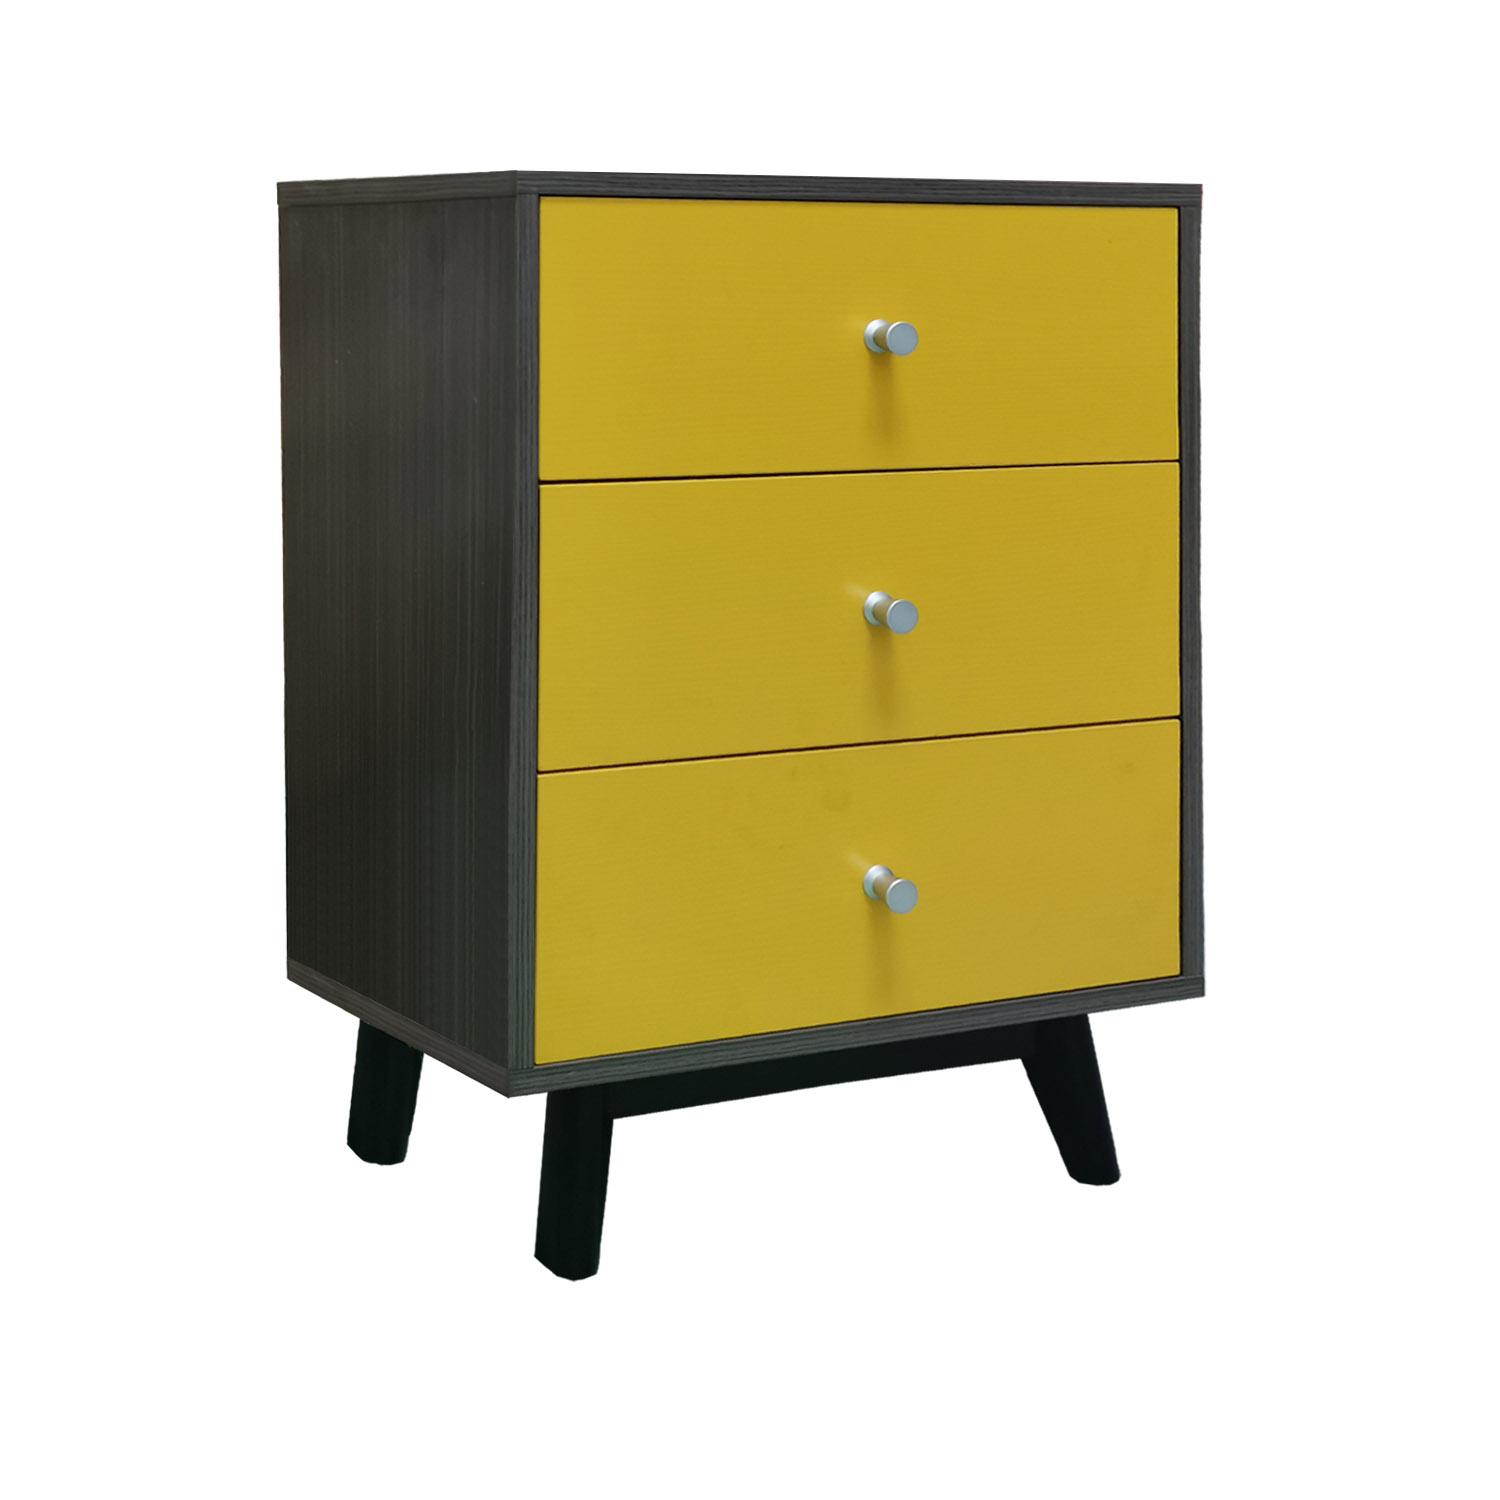 LIVING MALL_Castor 3 Chest Of Drawers_FREE DELIVERY